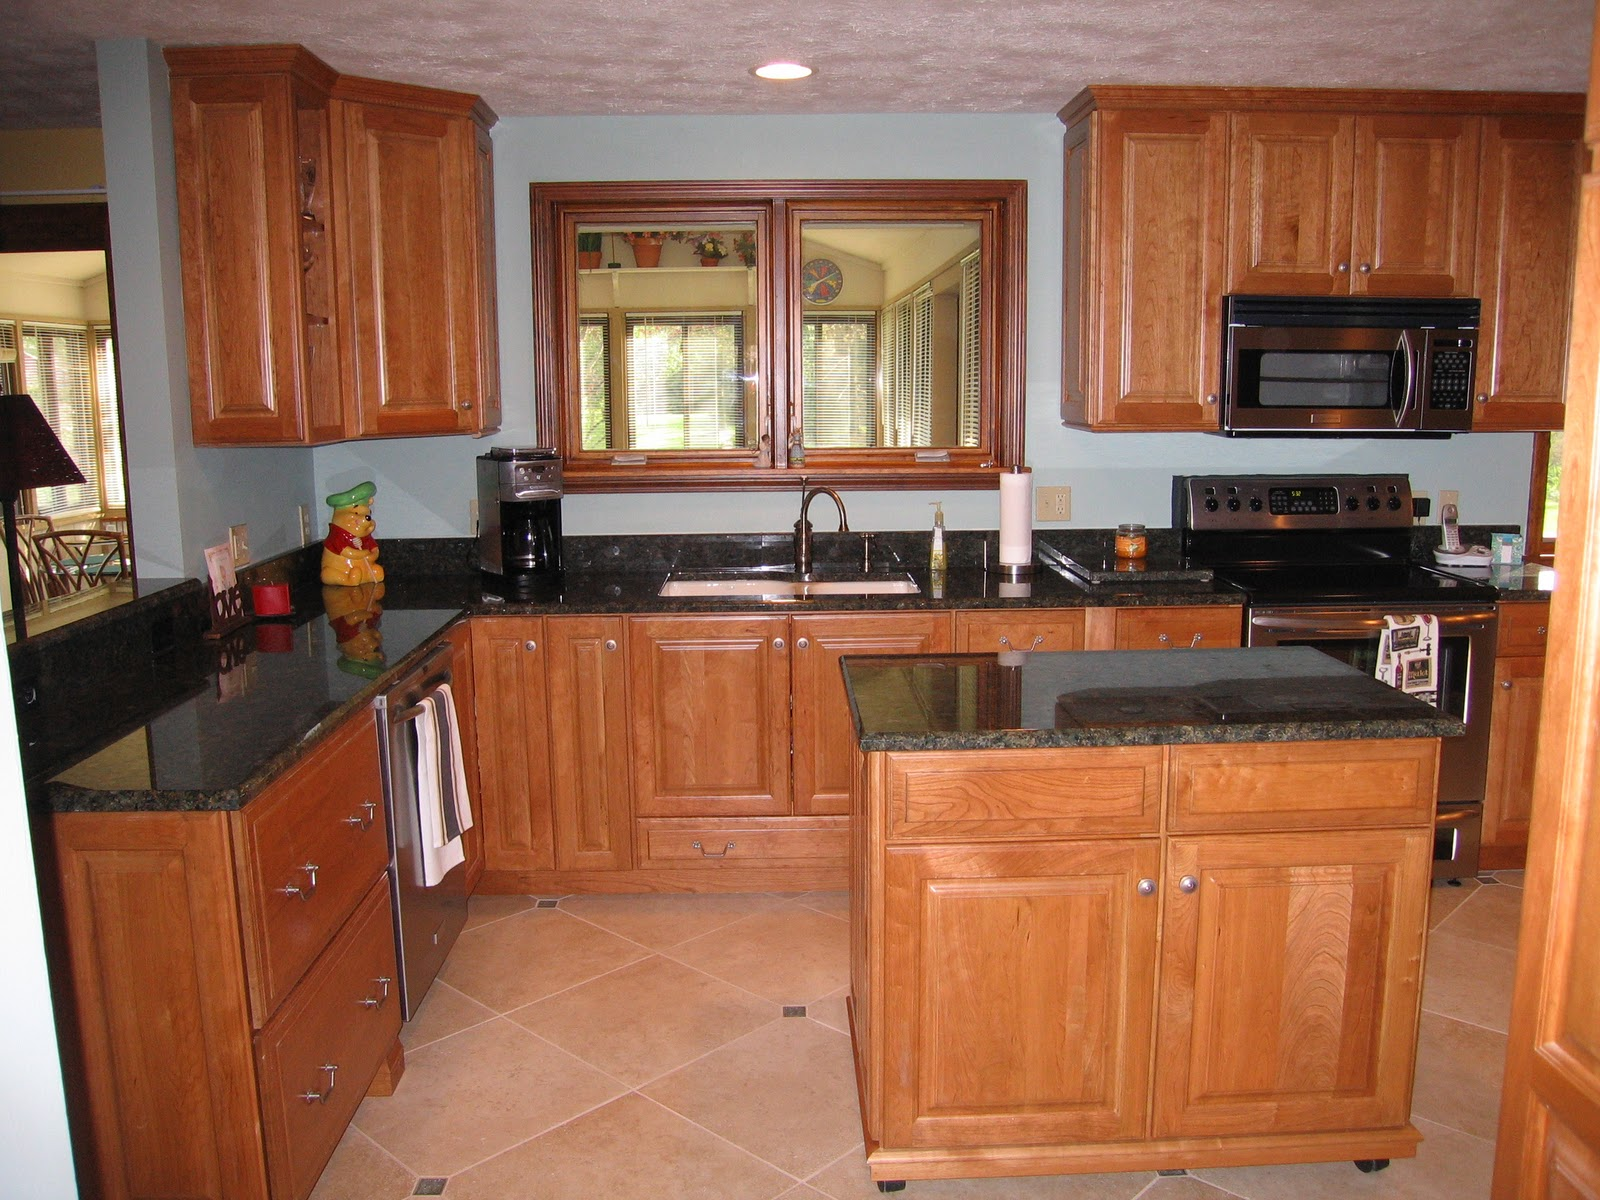 Meet the Parents and their amazing kitchen remodel Evolution